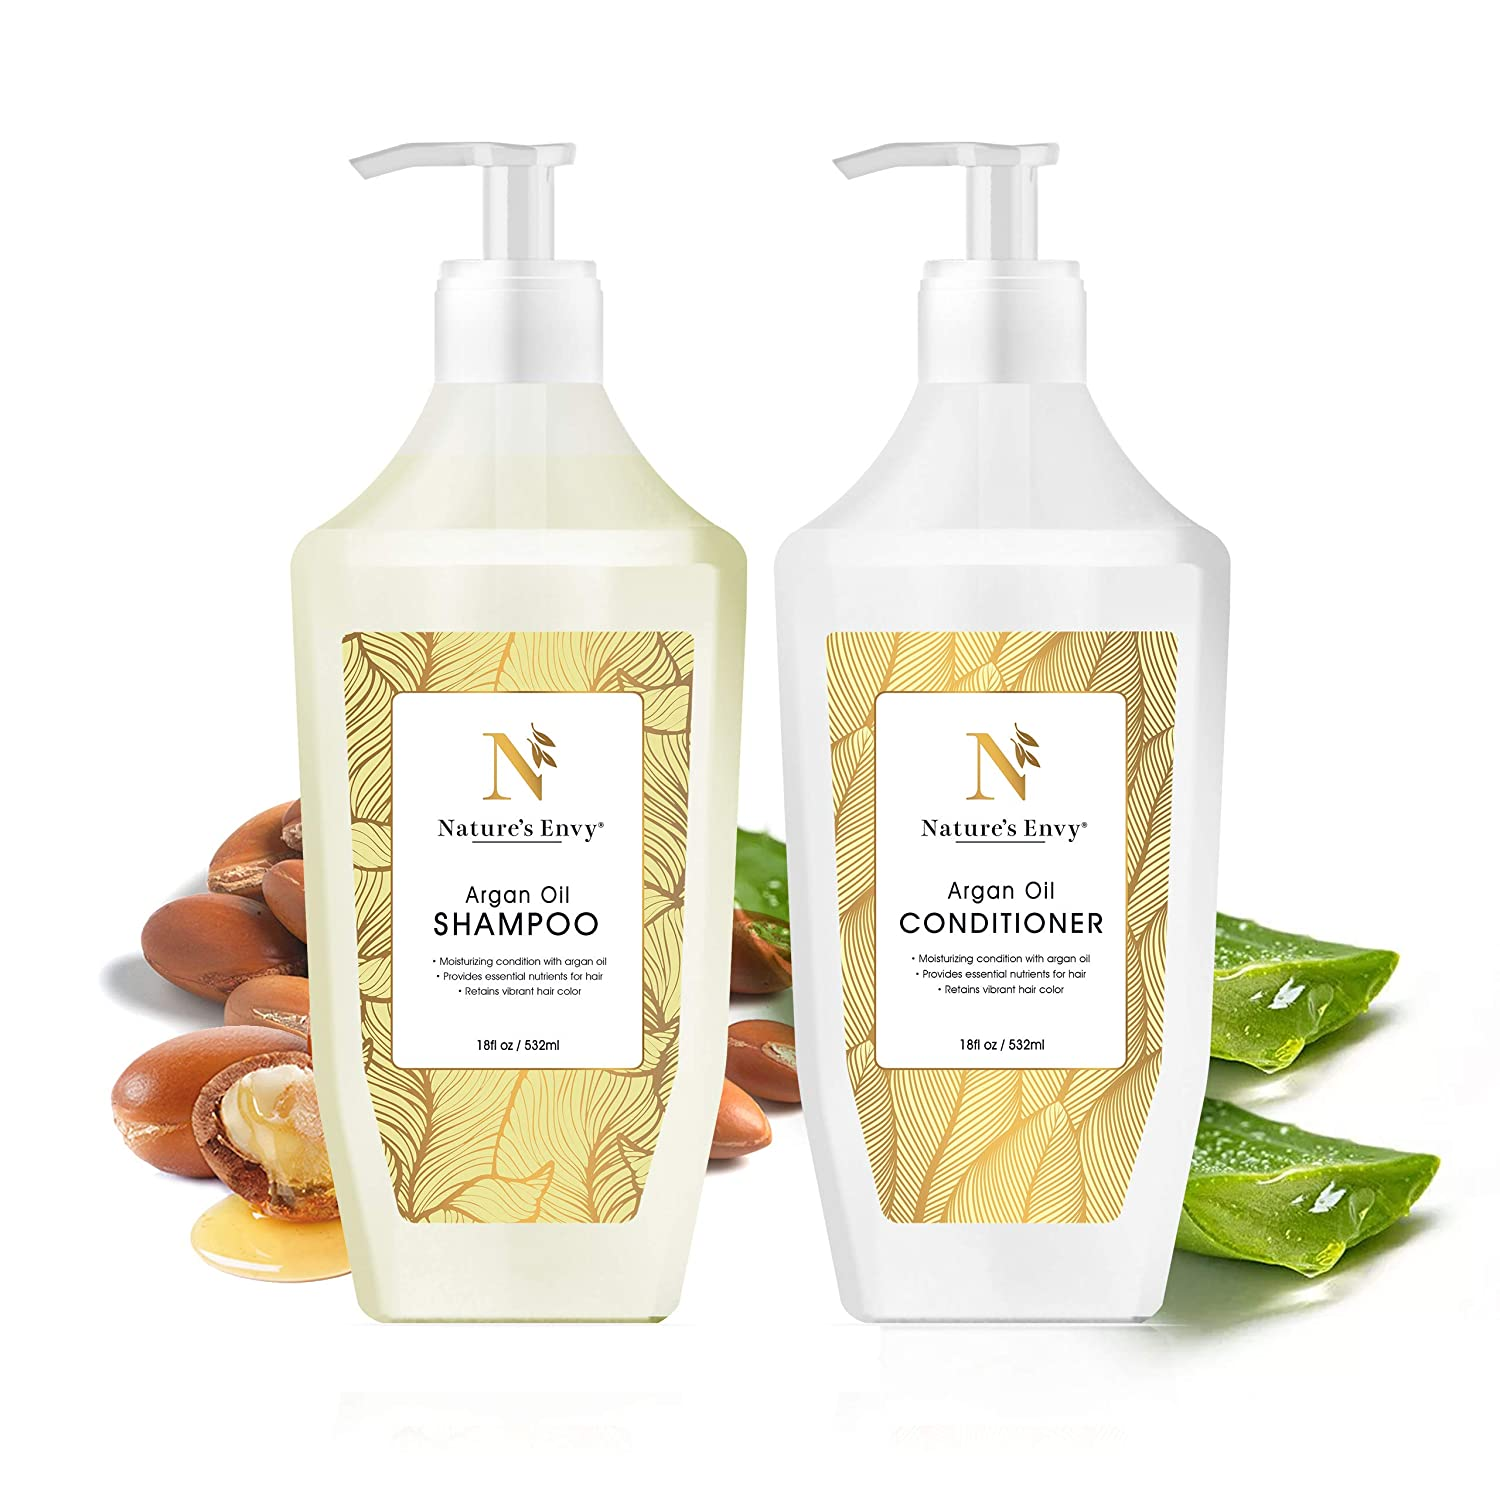 Argan Oil Shampoo and Conditioner Set Hydrates Moisturizes Free shipping Max 59% OFF - Dr